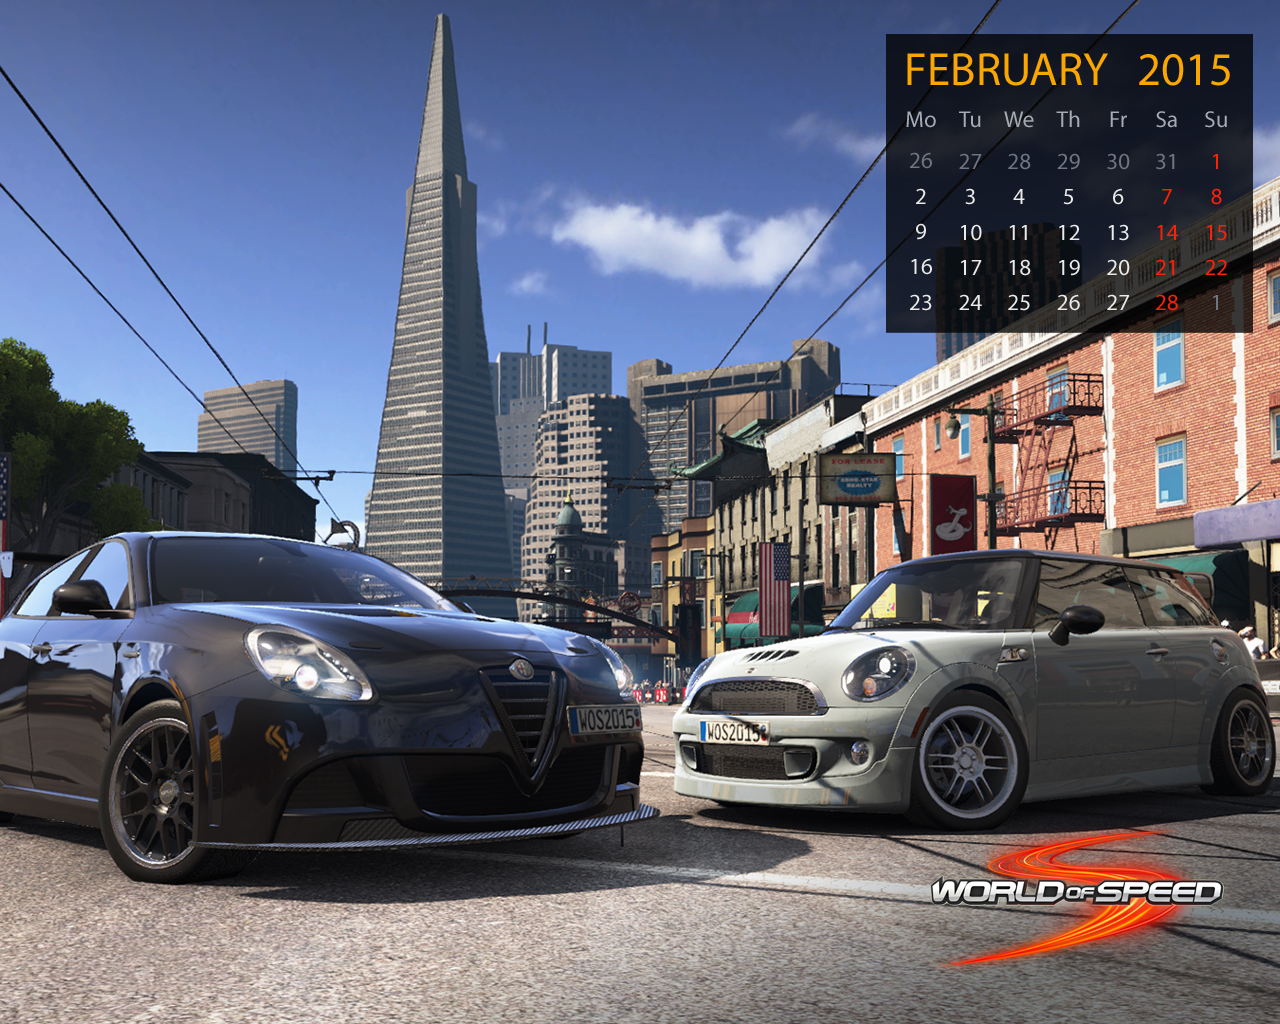 World of Speed February Wallpapers 1280x1024